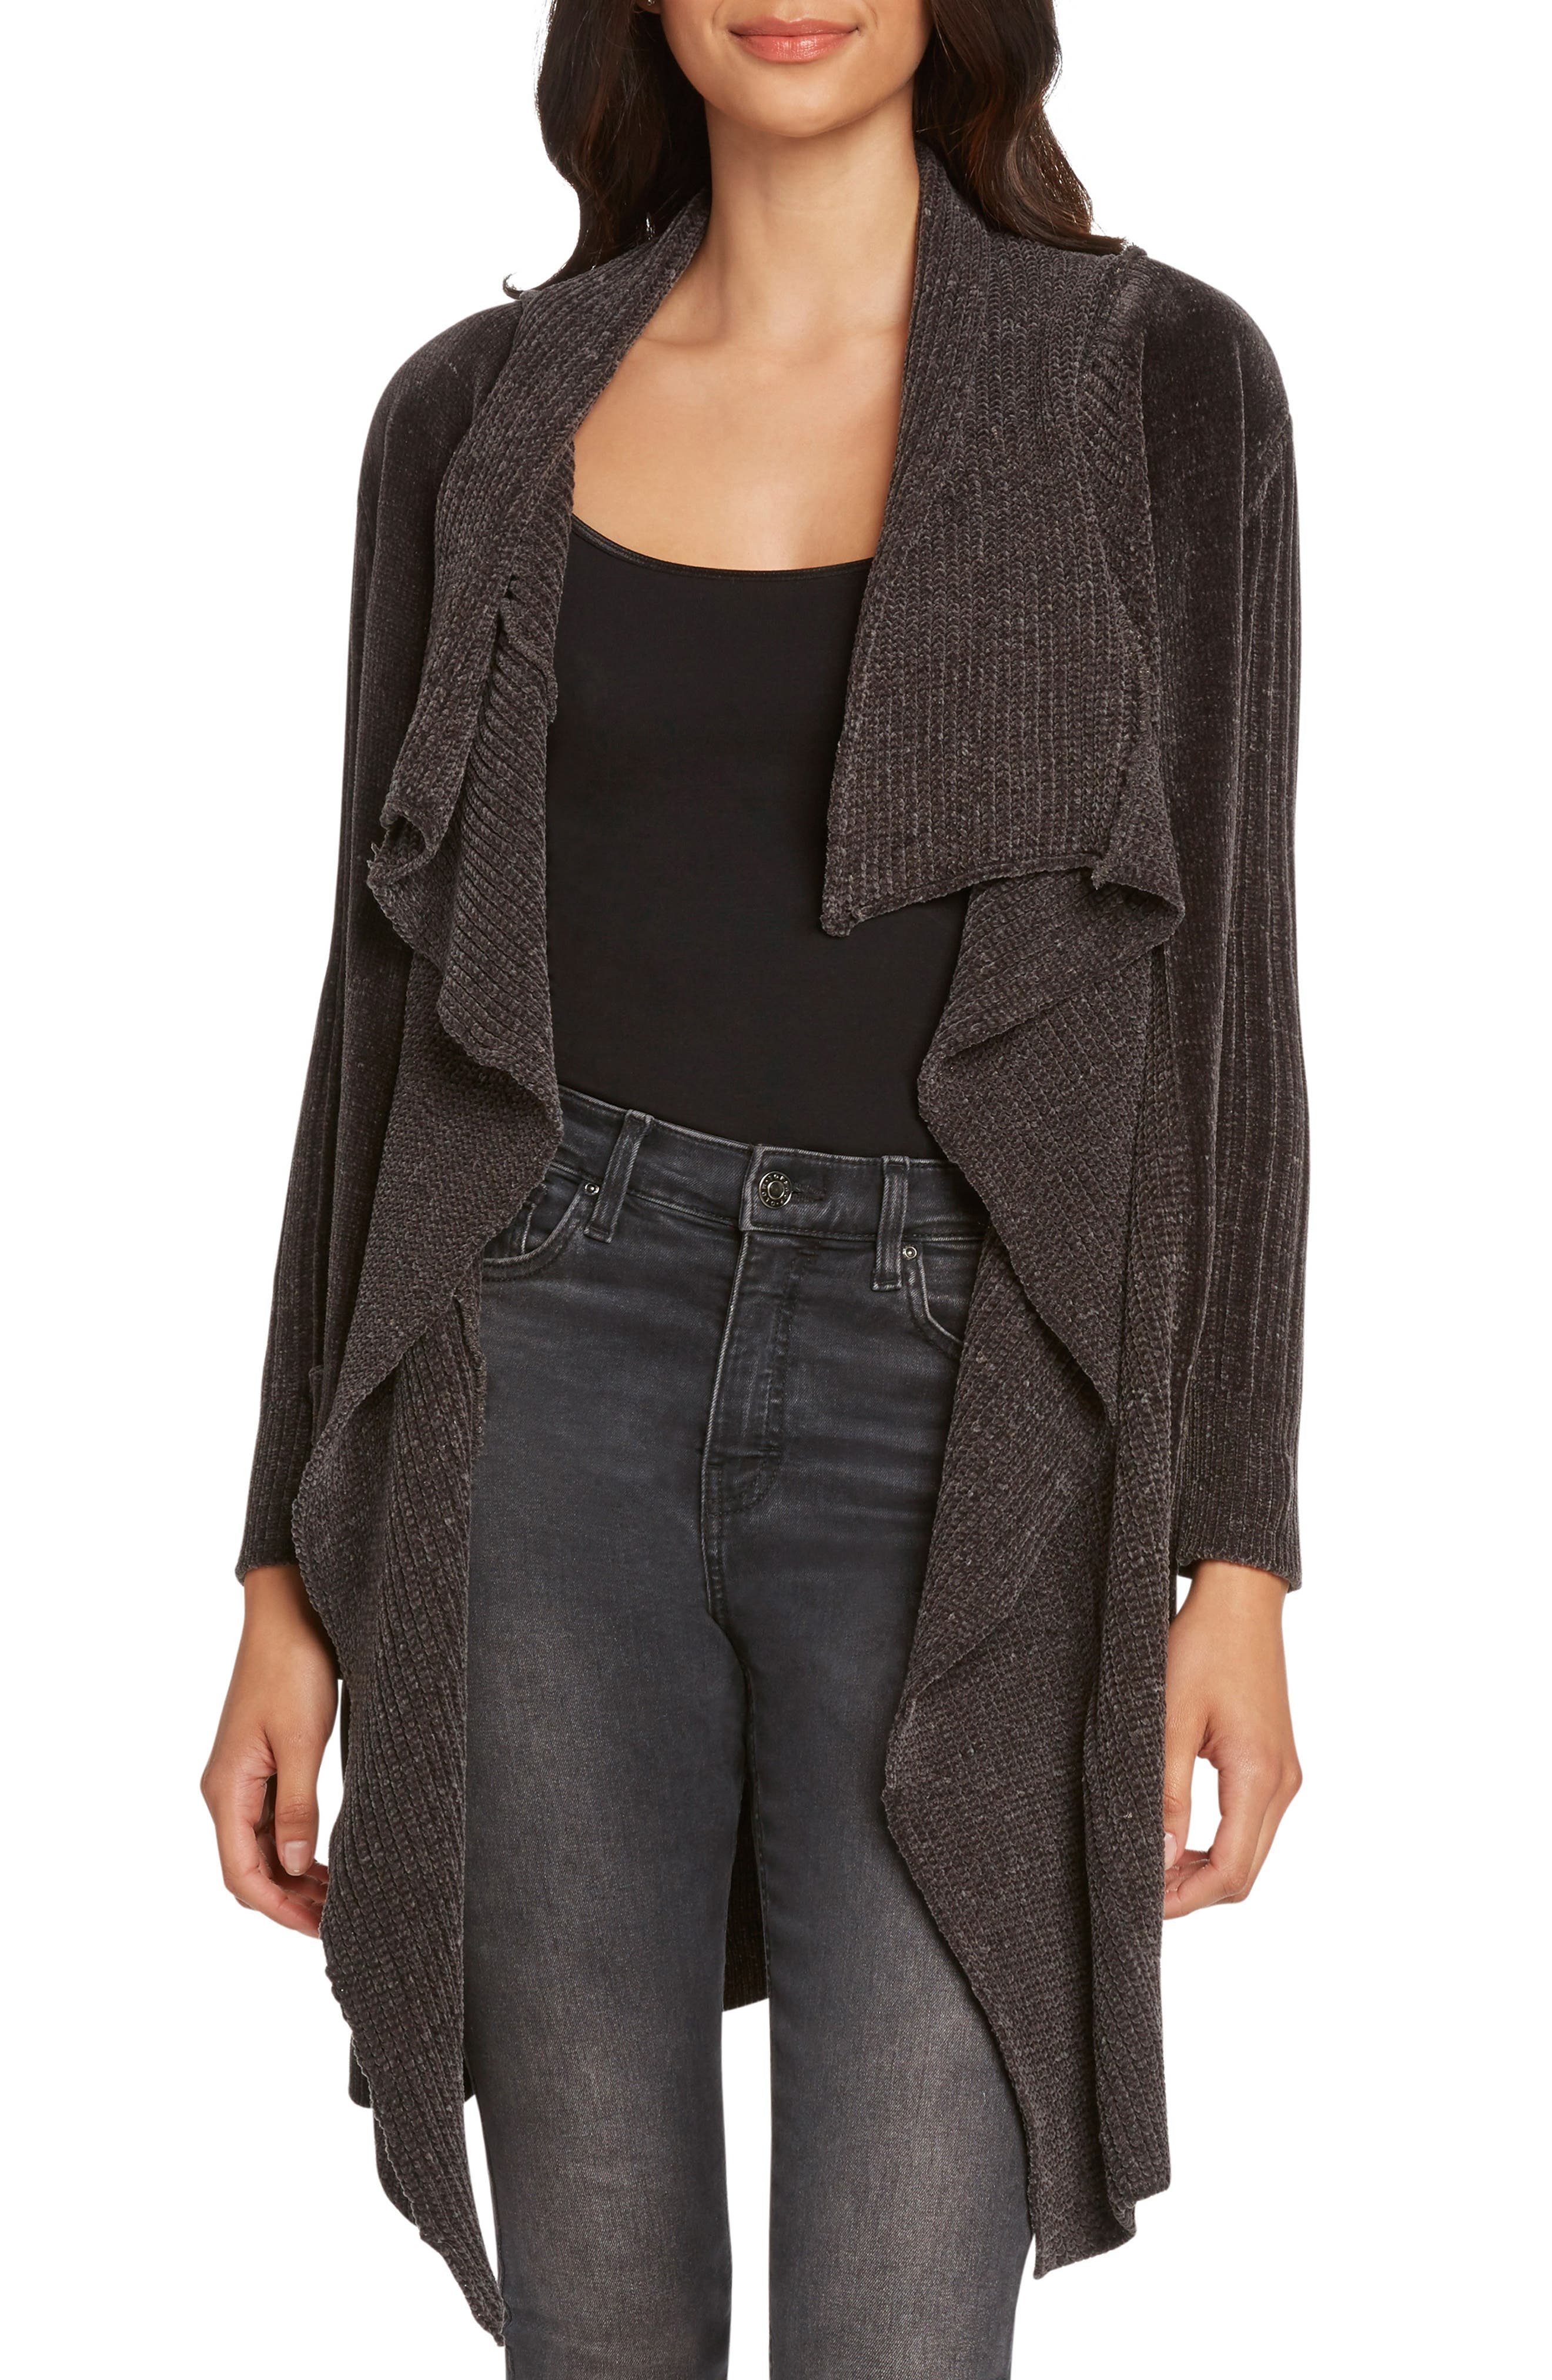 WILLOW & CLAY Chenille Shawl Collar Cardigan in Charcoal